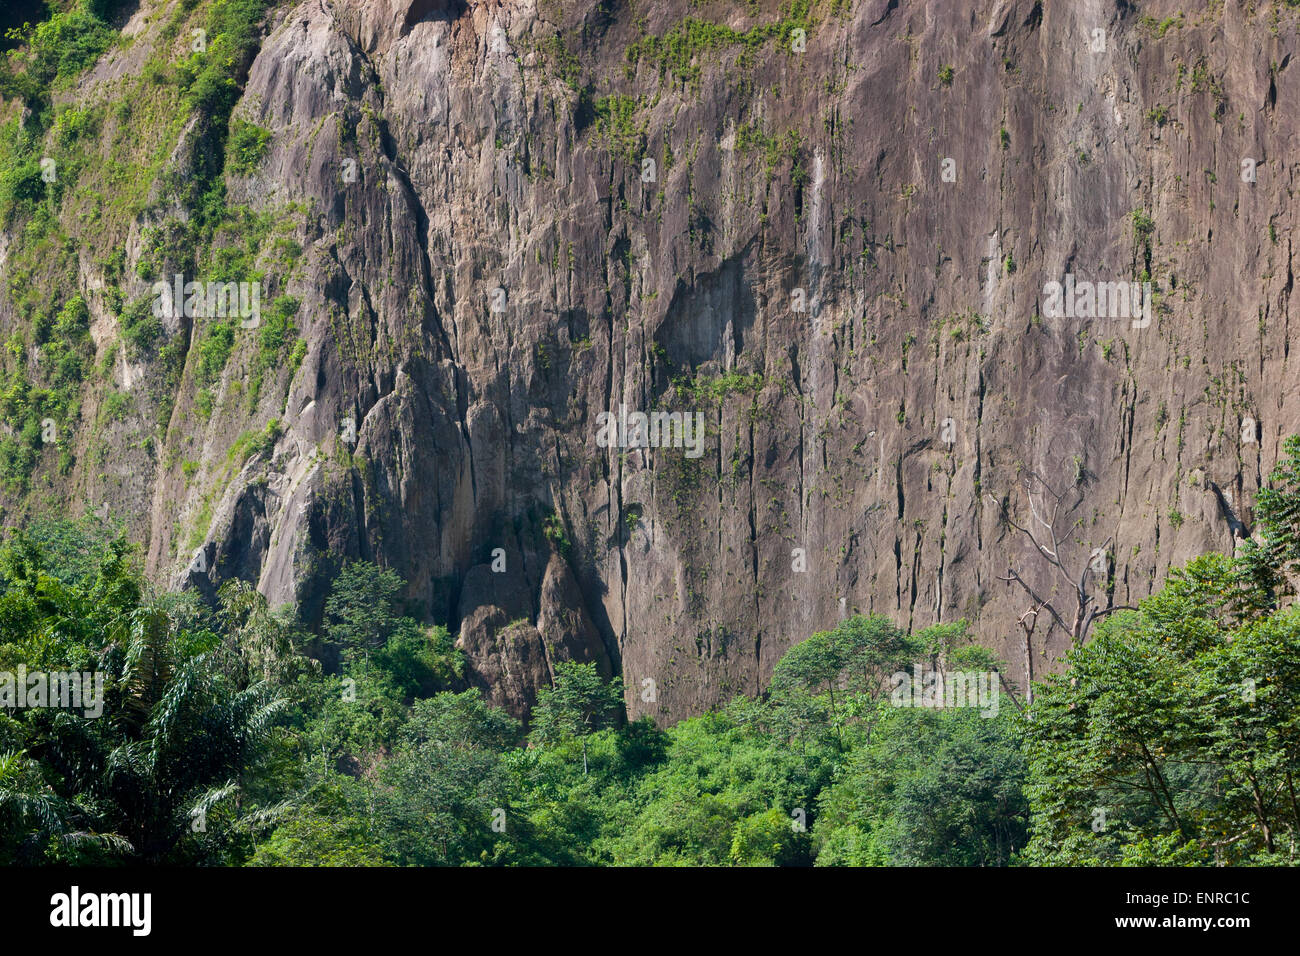 Big wall of the Harau Valley in West Sumatra, Indonesia. - Stock Image